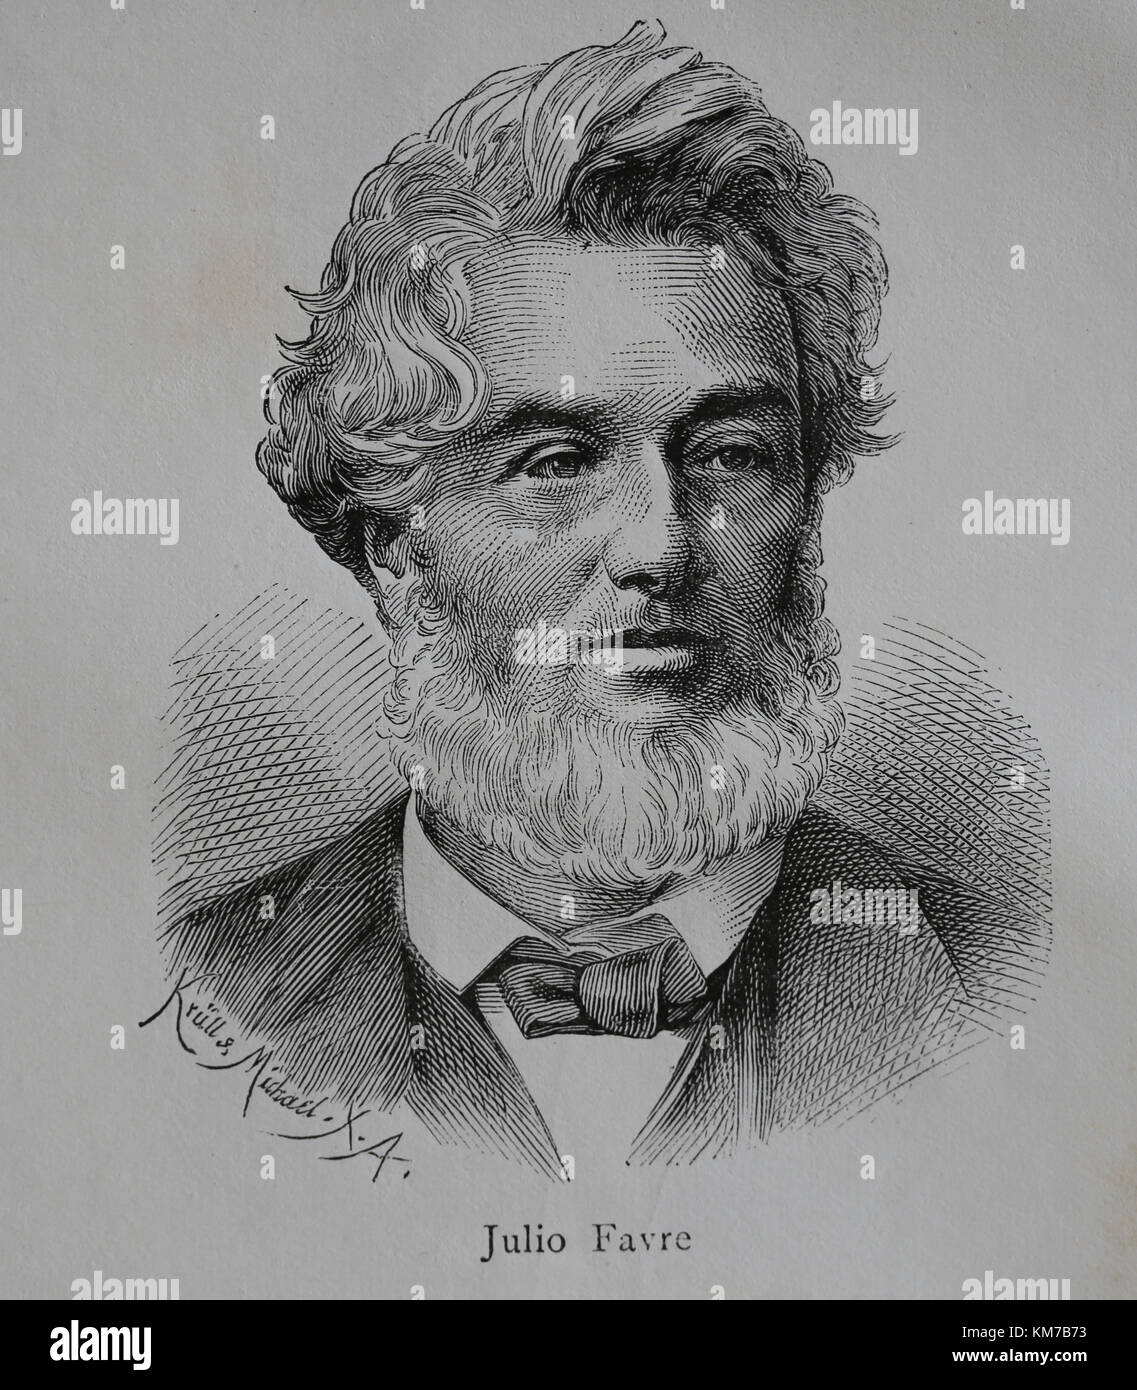 Jules Favre (1809-1880). French statesman. Leaders of the Moderate Republicans. Portrait. Engraving, 1883. - Stock Image